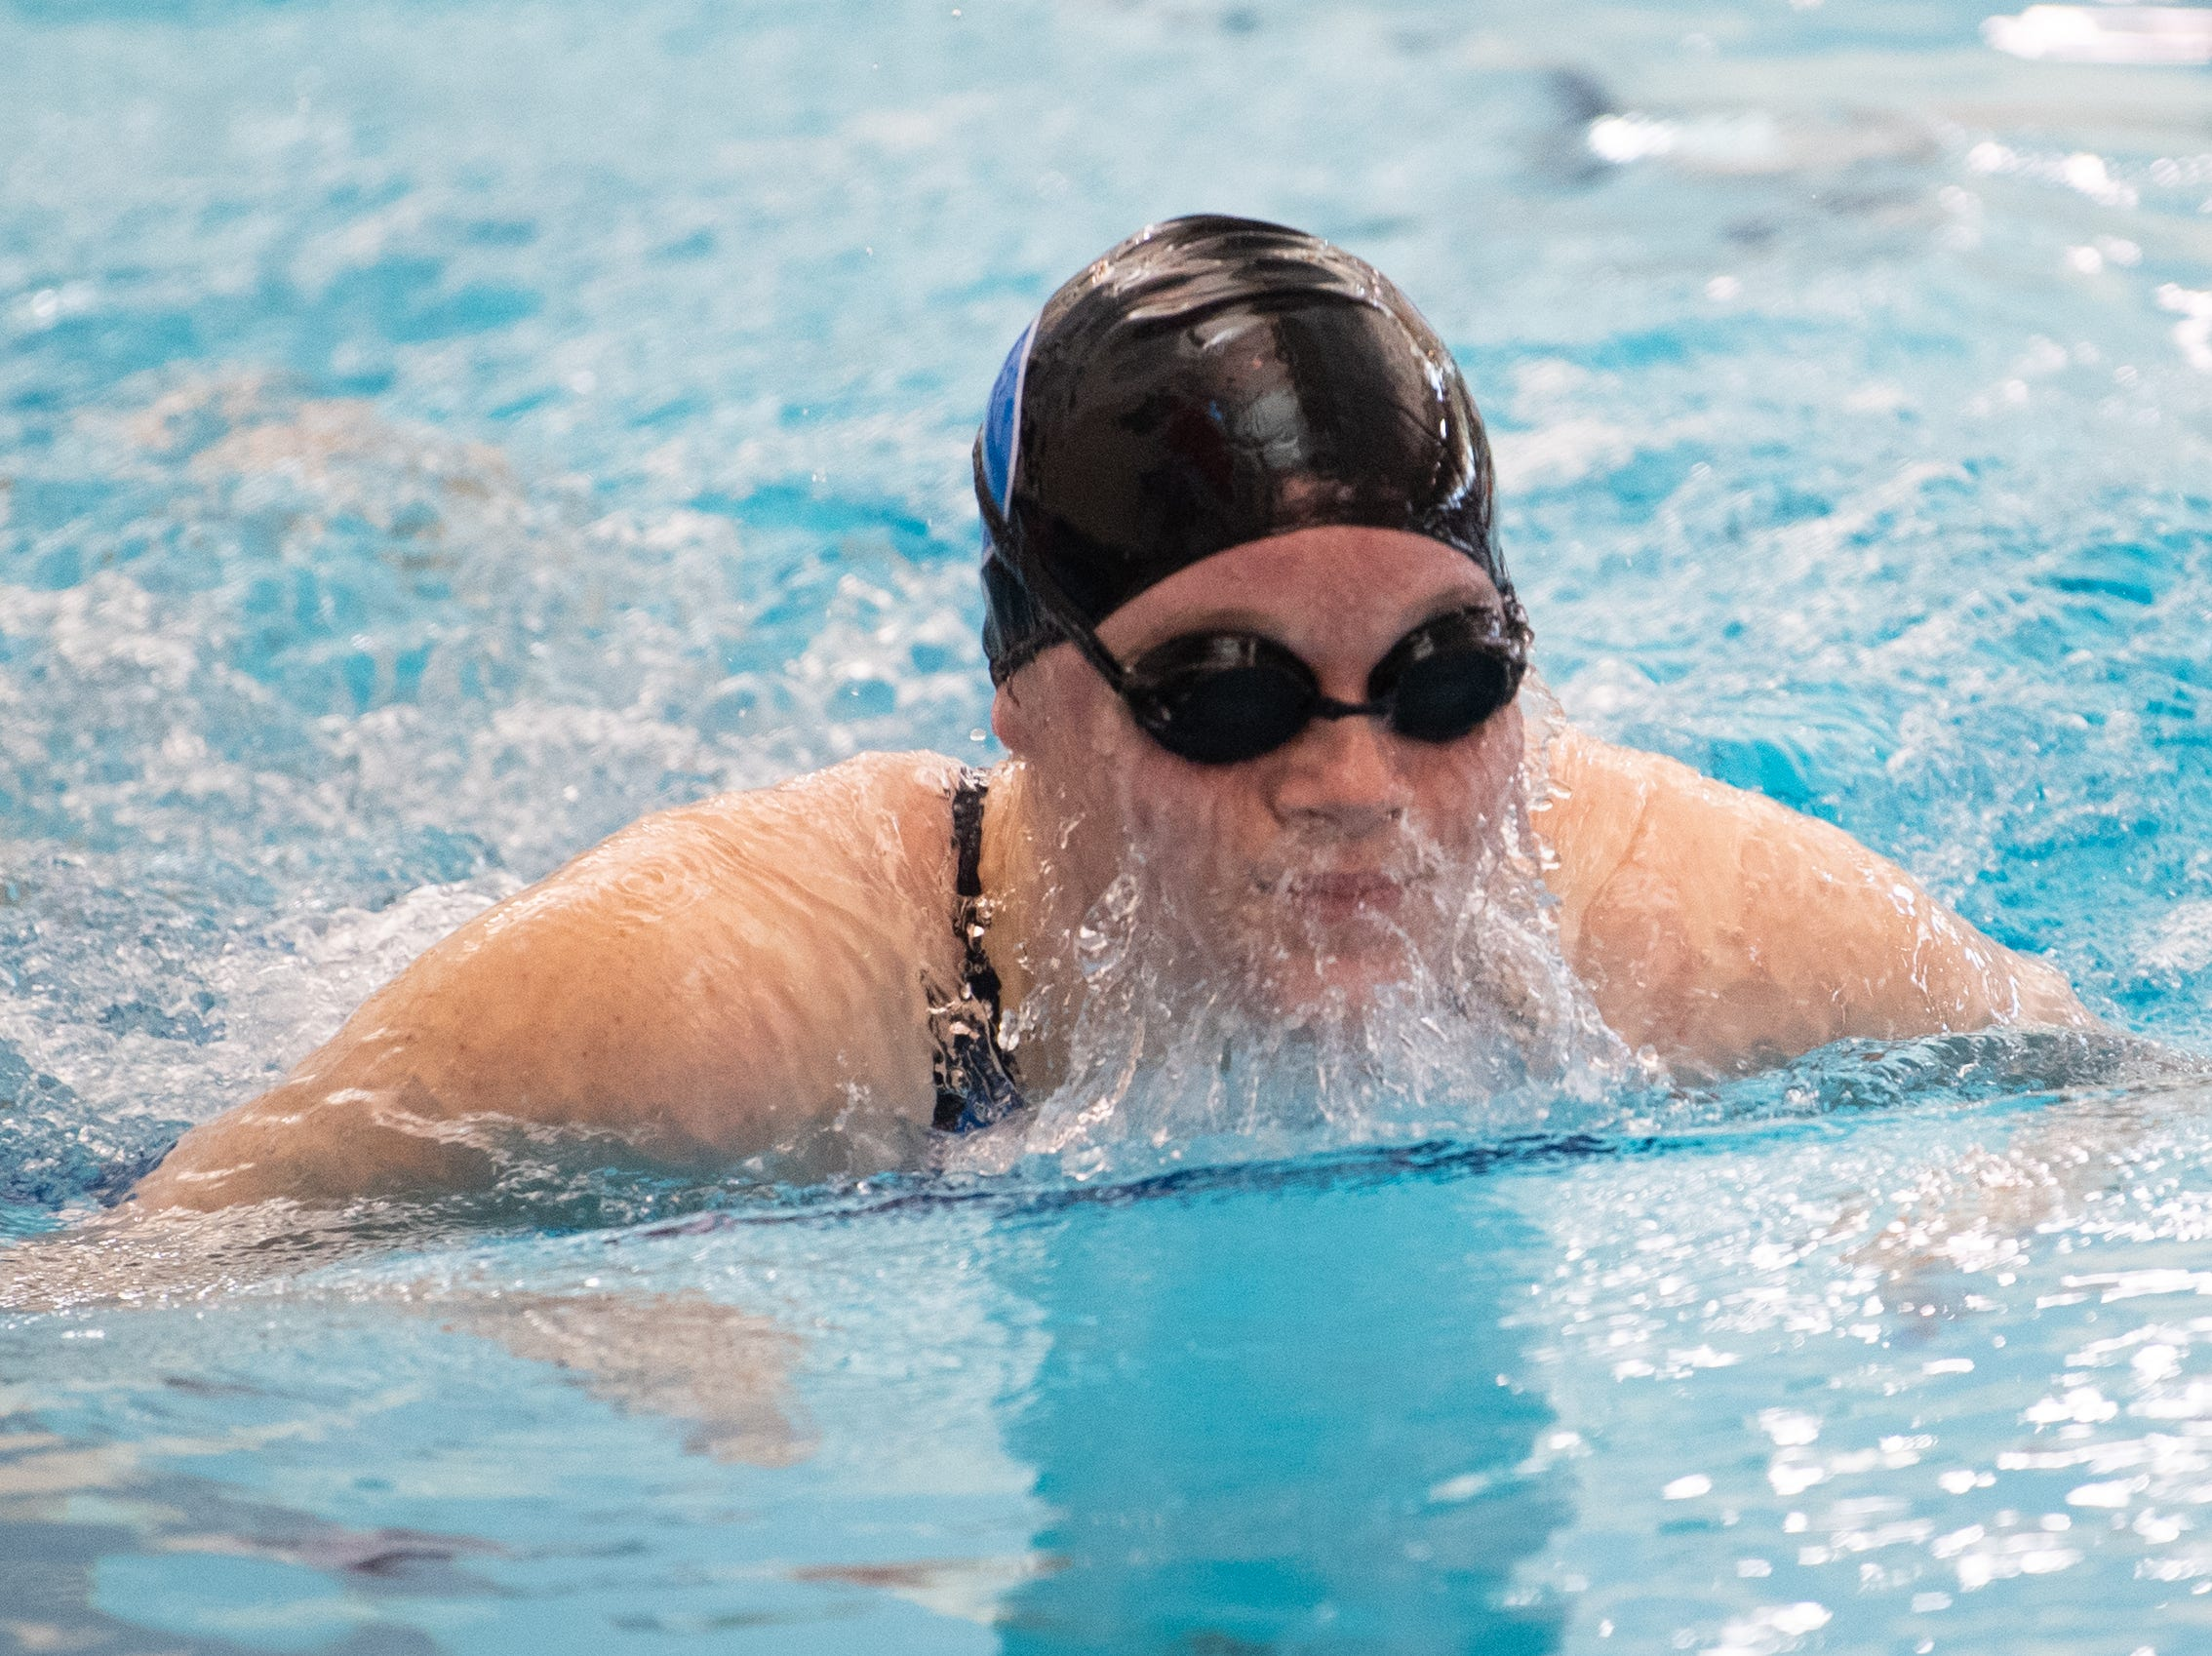 Marissa Locondro of Dallastown competes in the Girls 100 Yard Breaststroke during the 2019 YAIAA Swimming and Diving Championships at Central York High School, February 9, 2019.